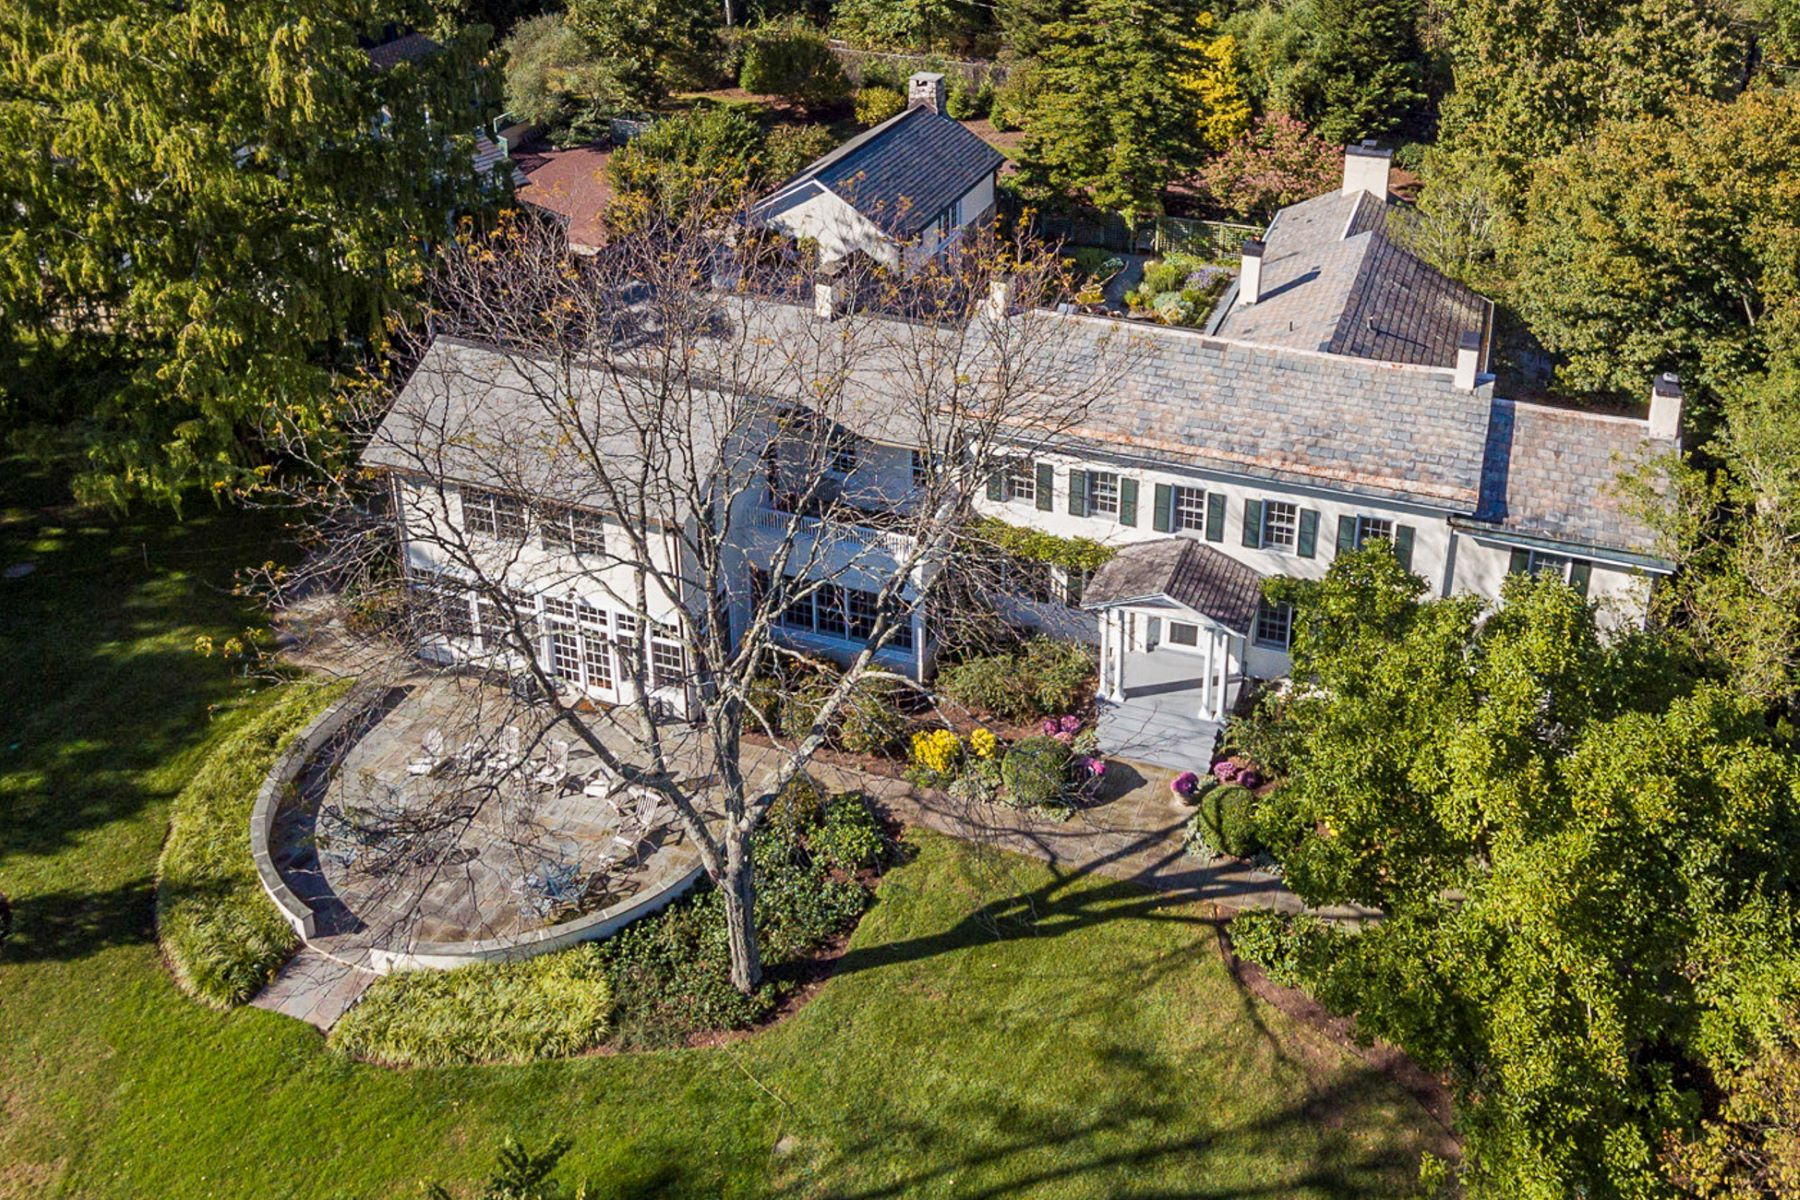 House for Sale at Stony Brook Estate - Where History Makes a Home - Lawrence Township 4710 Province Line Road Princeton, New Jersey 08540 United StatesIn/Around: Lawrence Township